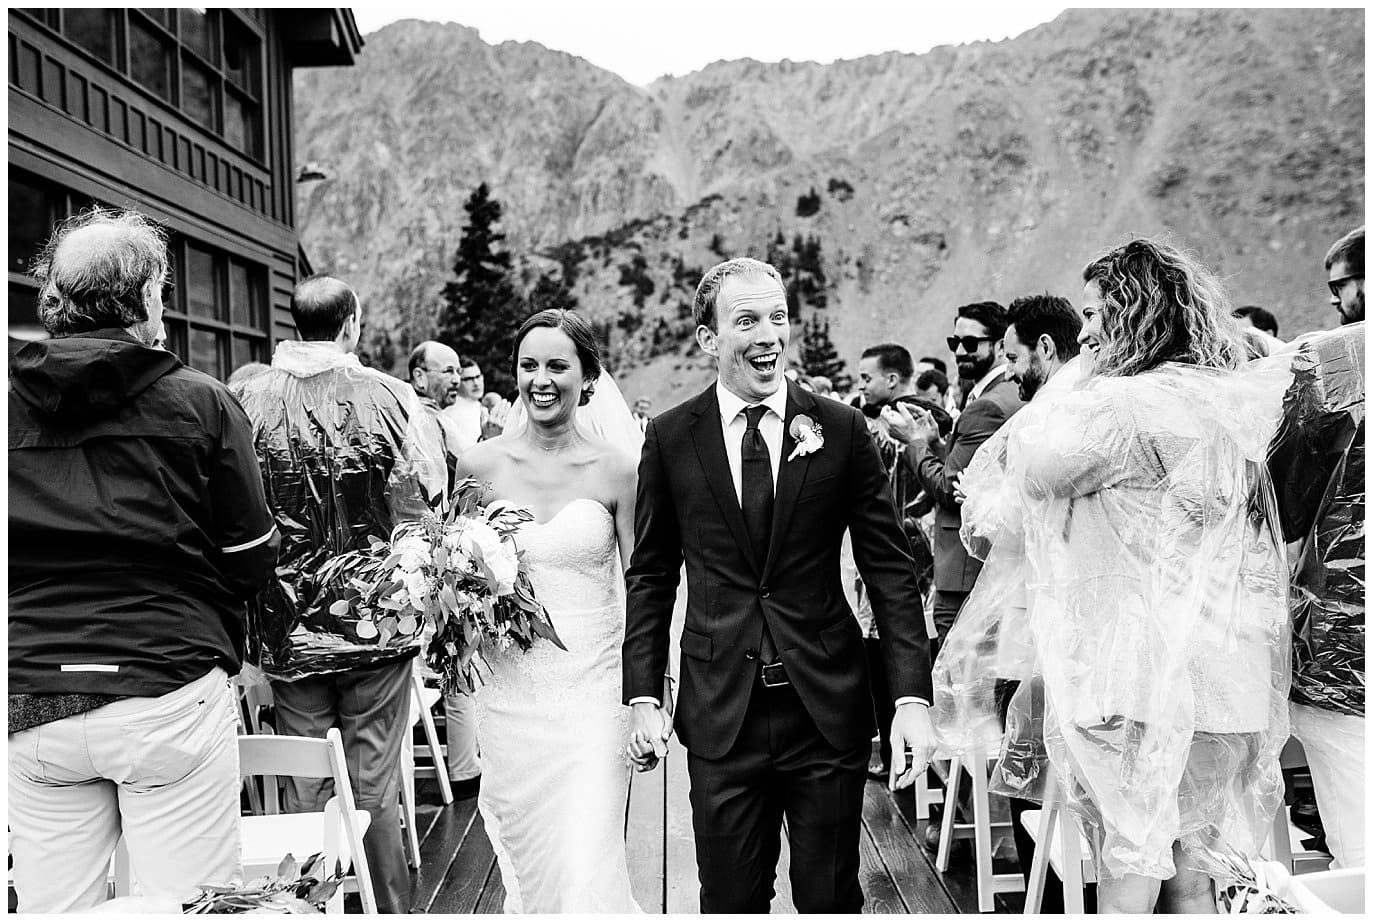 excited bride and groom walk down aisle at rainy Arapahoe Basin Black Mountain Lodge Wedding by Denver Wedding Photographer Jennie Crate